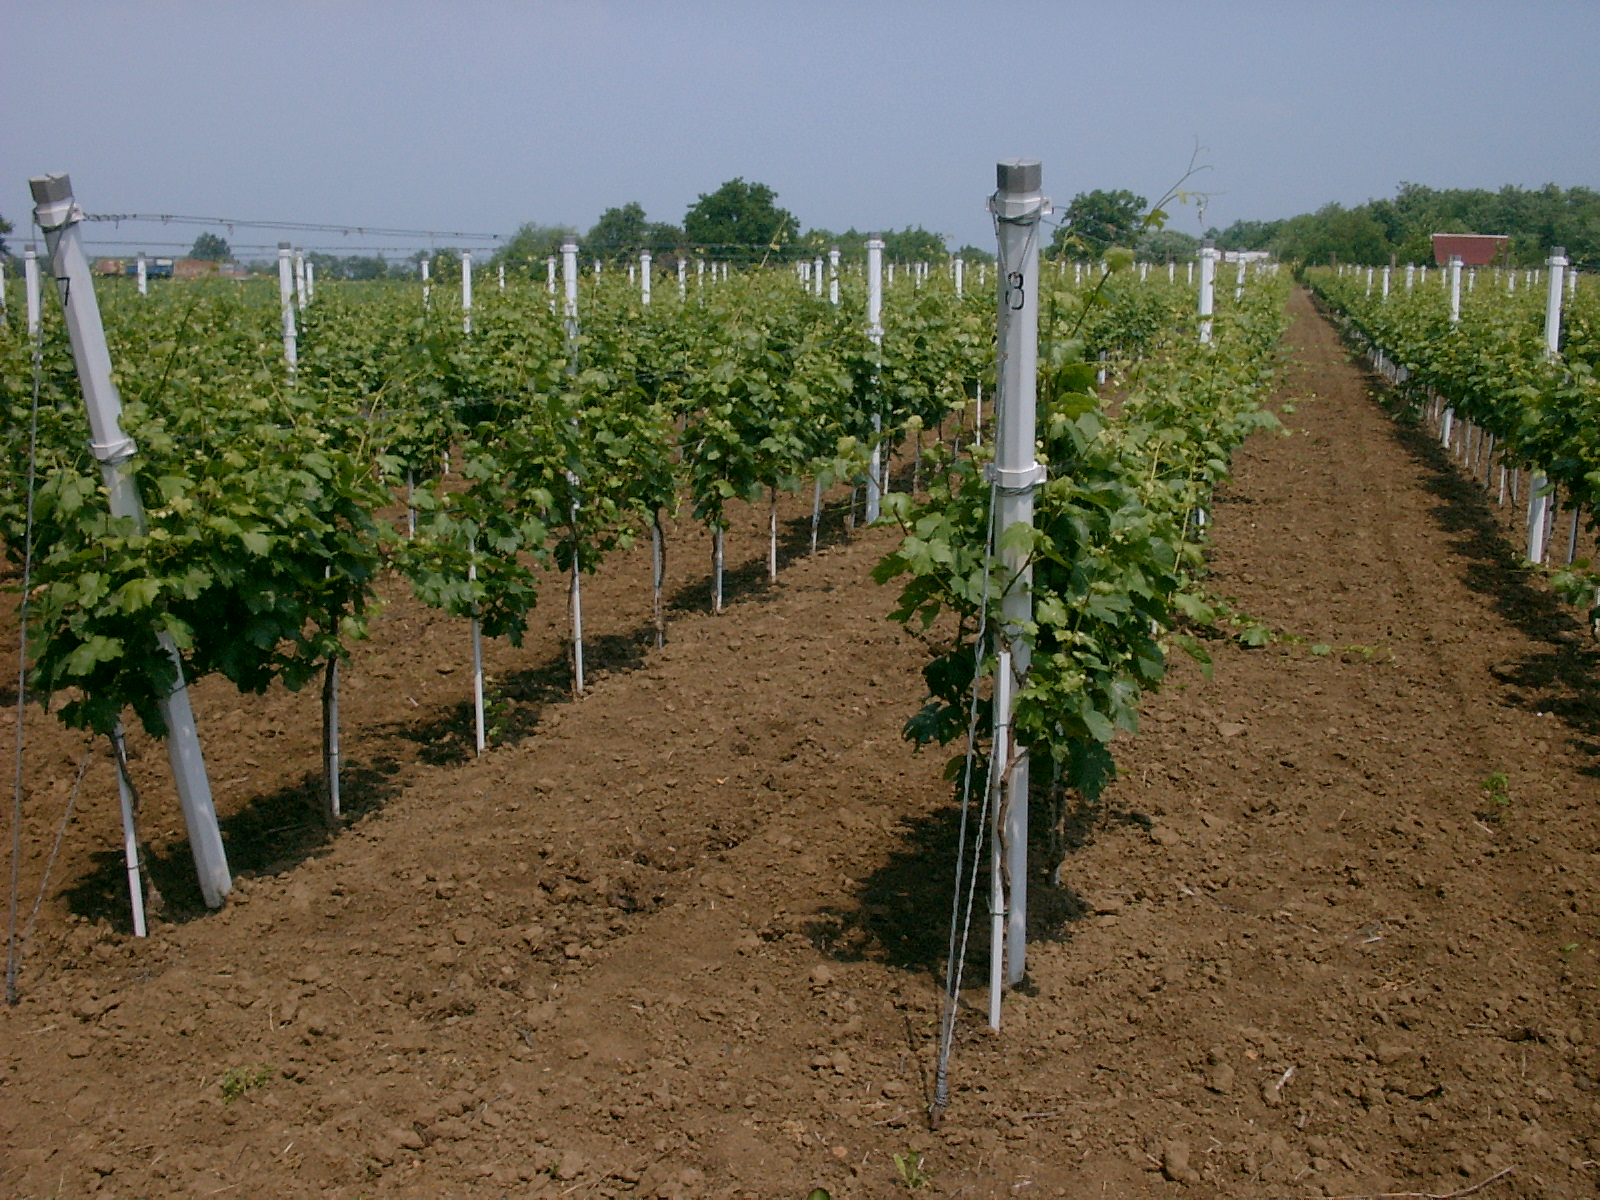 Vineyard with PVC poles